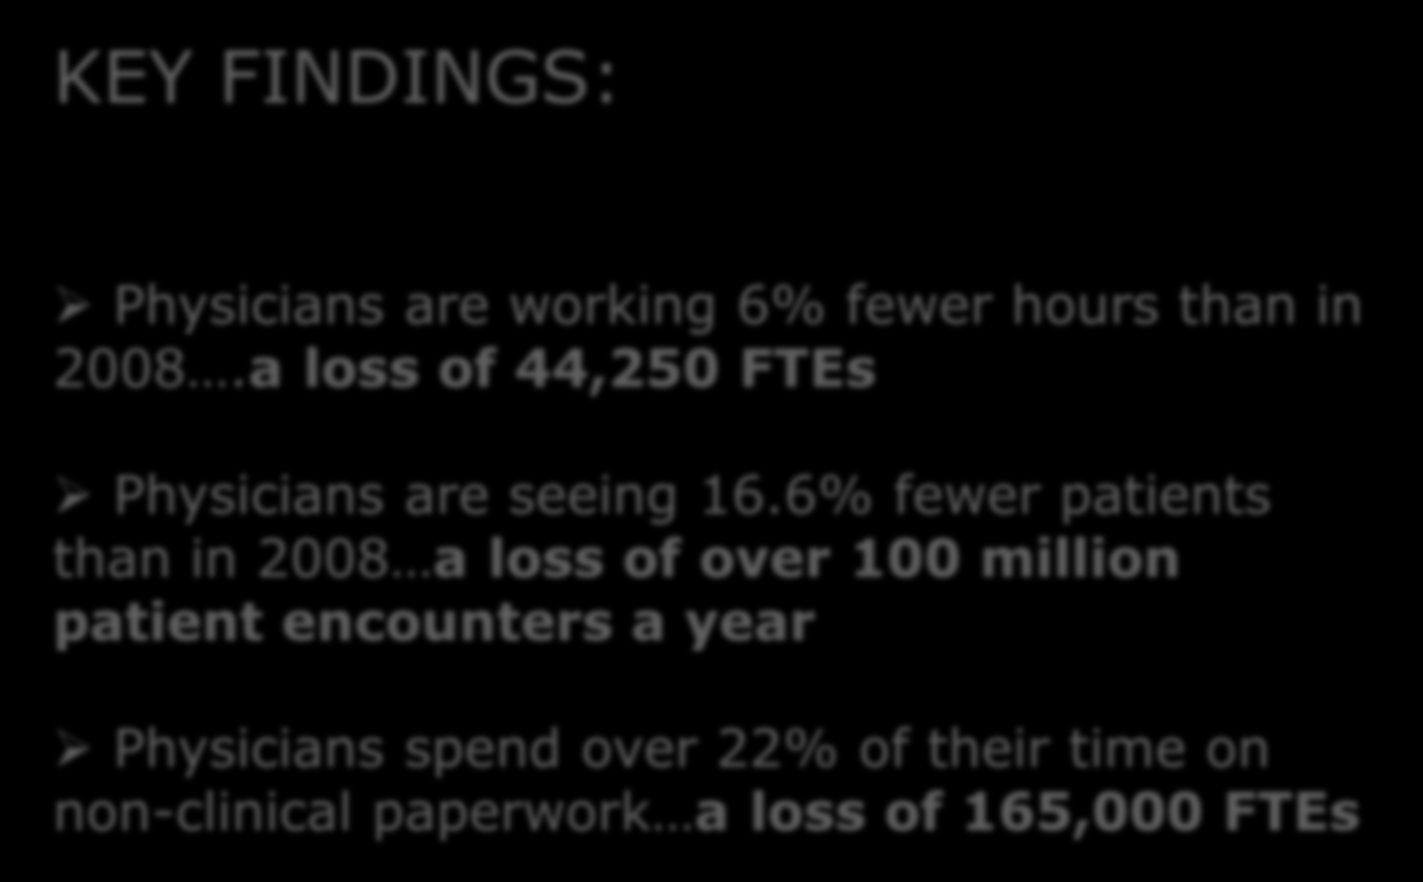 6% fewer patients than in 2008 a loss of over 100 million patient encounters a year